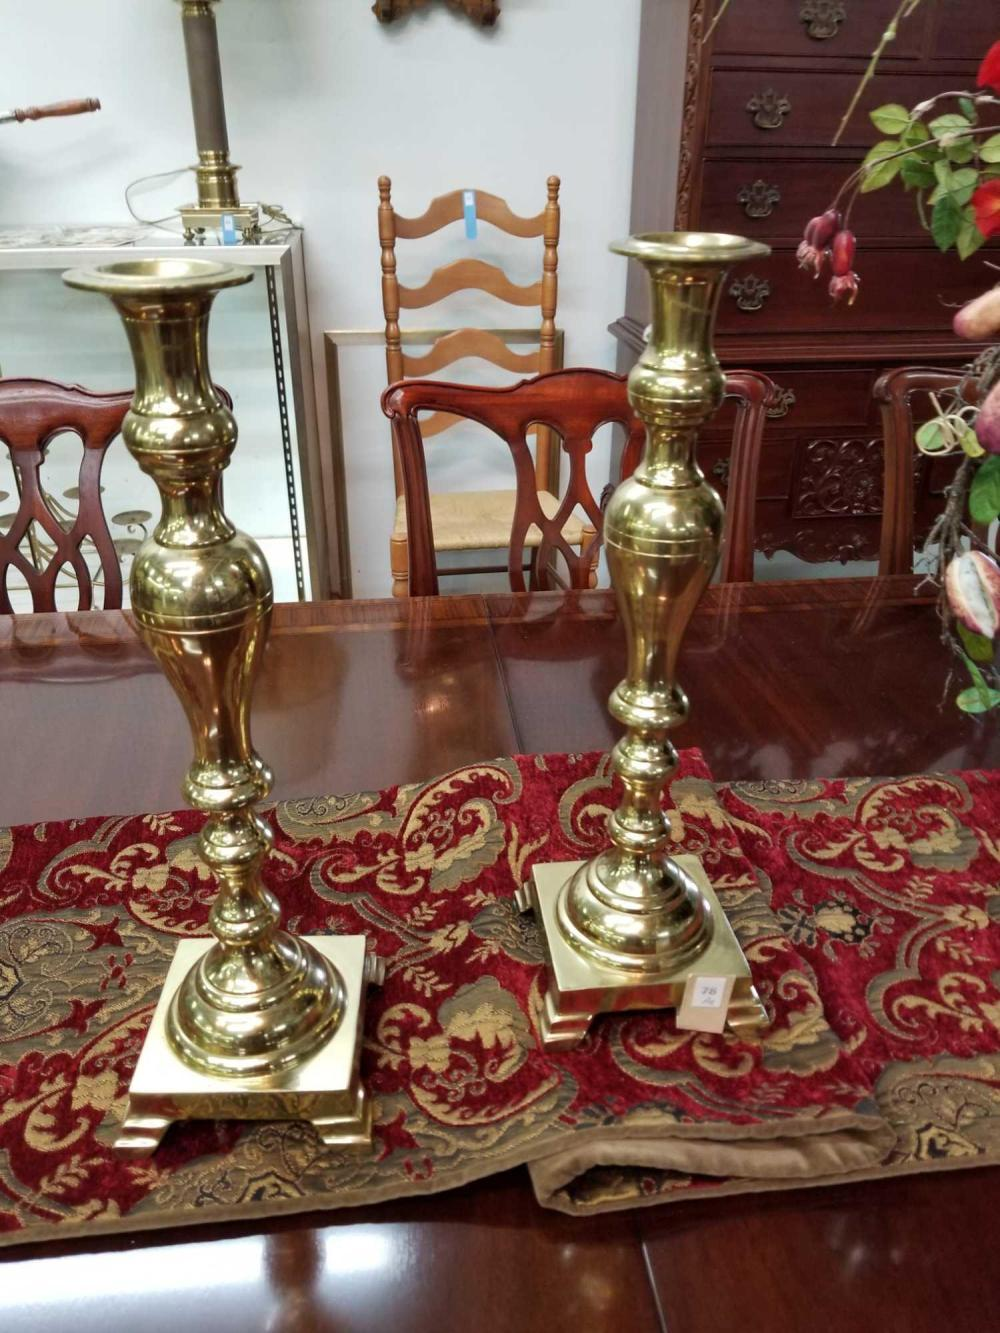 CHIPPENDALE STYLE LARGE BRASS CANDLESTICKS - PAIR